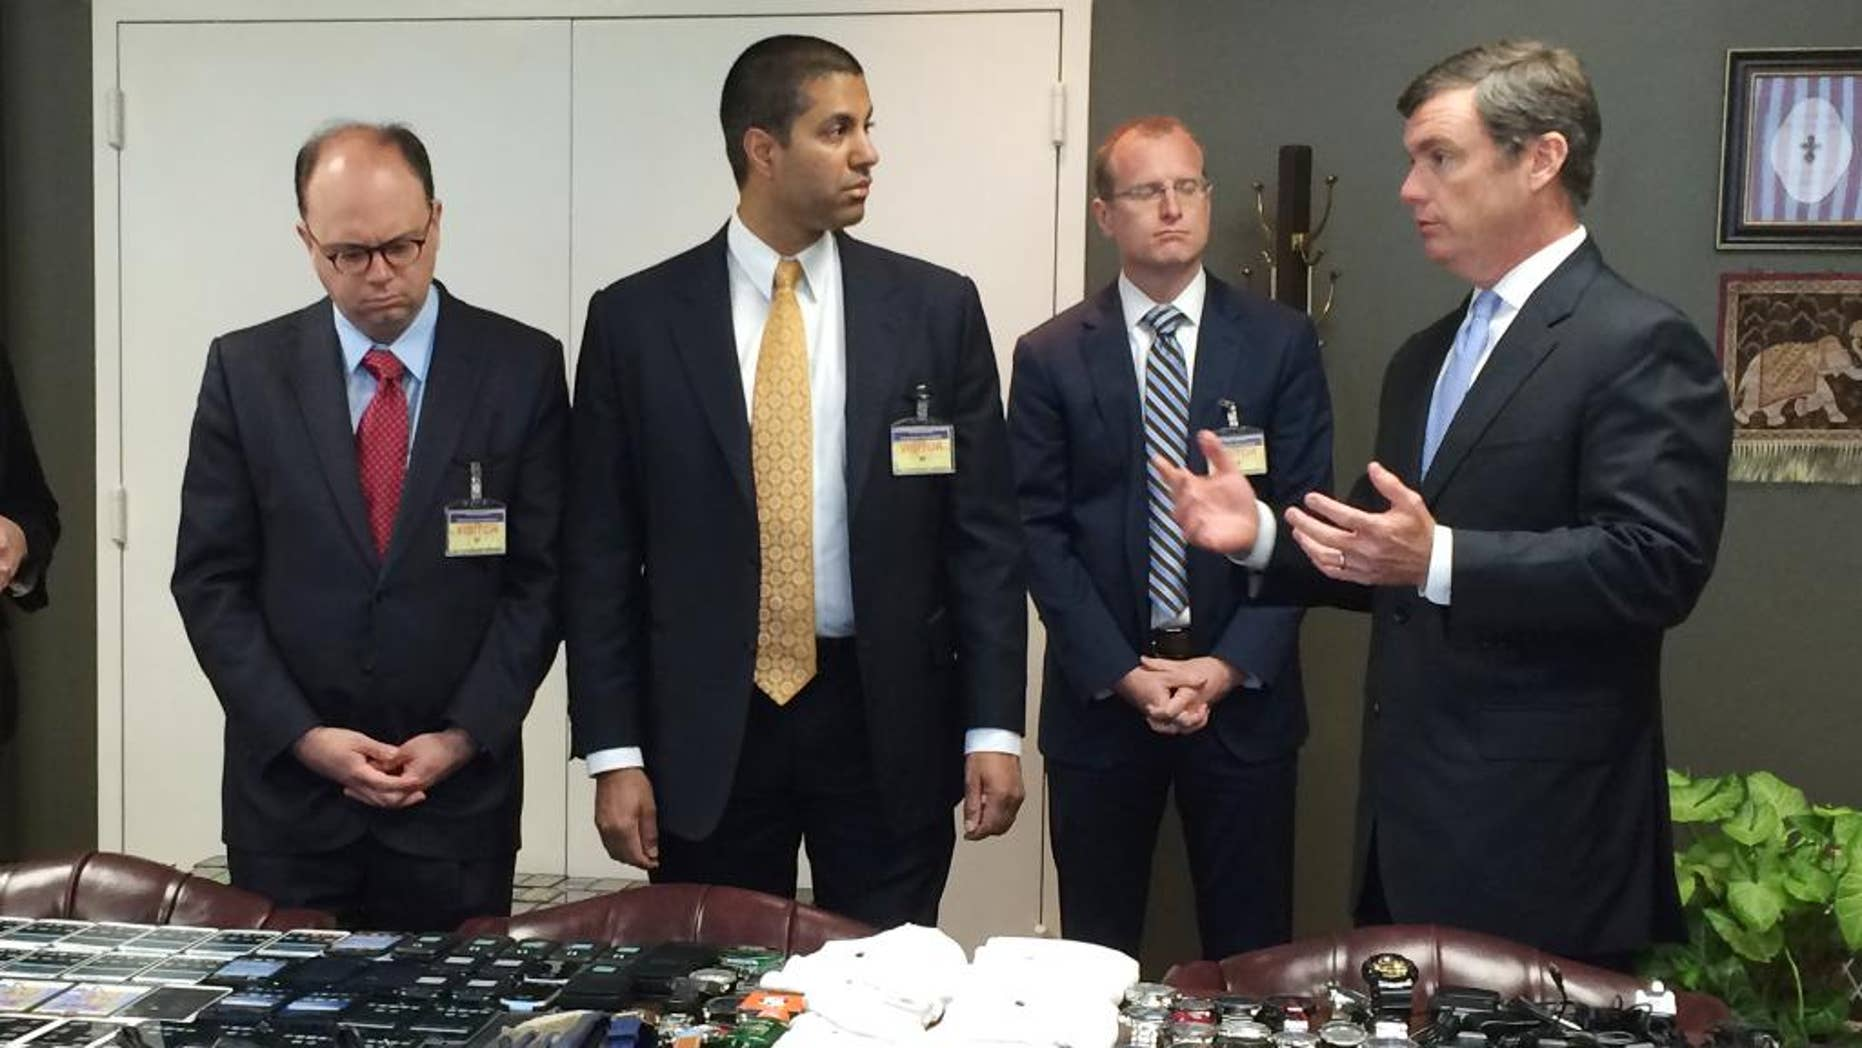 In this photo made available by the South Carolina Department of Corrections on Wednesday, April 6, 2016, their director, Bryan Stirling, right, showing hundreds of cellphones that were seized in a single raid from the Lee Correctional Institution, S.C. Stirling speaks to FCC official Matthew Berry, left, FCC Commissioner Ajit Pai and FCC official Brendan Carr. Stirling wants federal officials to allow the state to block cell signals so contraband phones become useless to inmates. (Stephanie Givens, South Carolina Department of Corrections via AP)